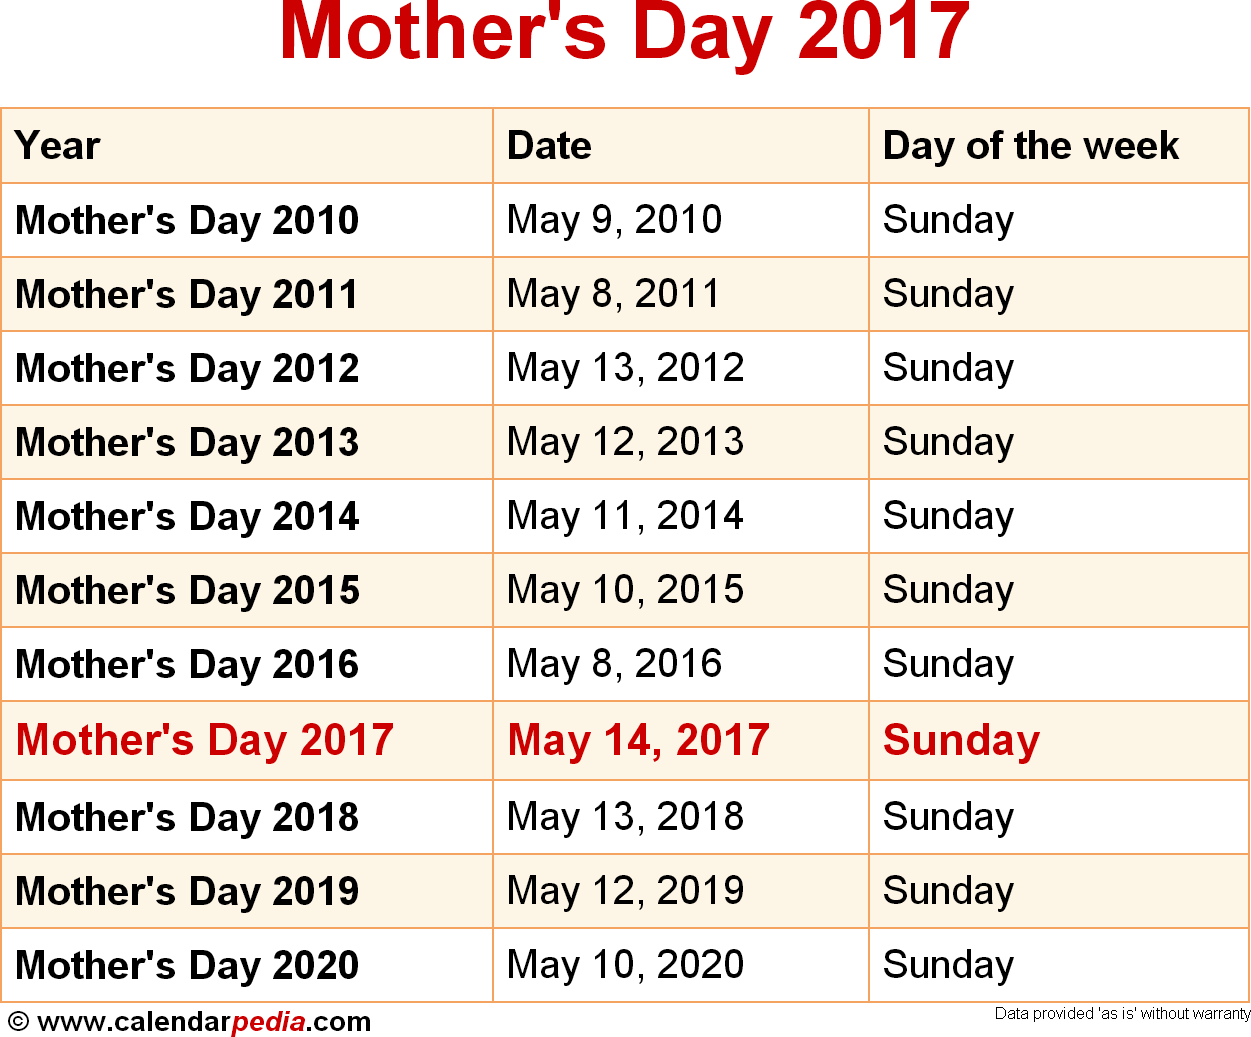 Date of mother's day in Perth